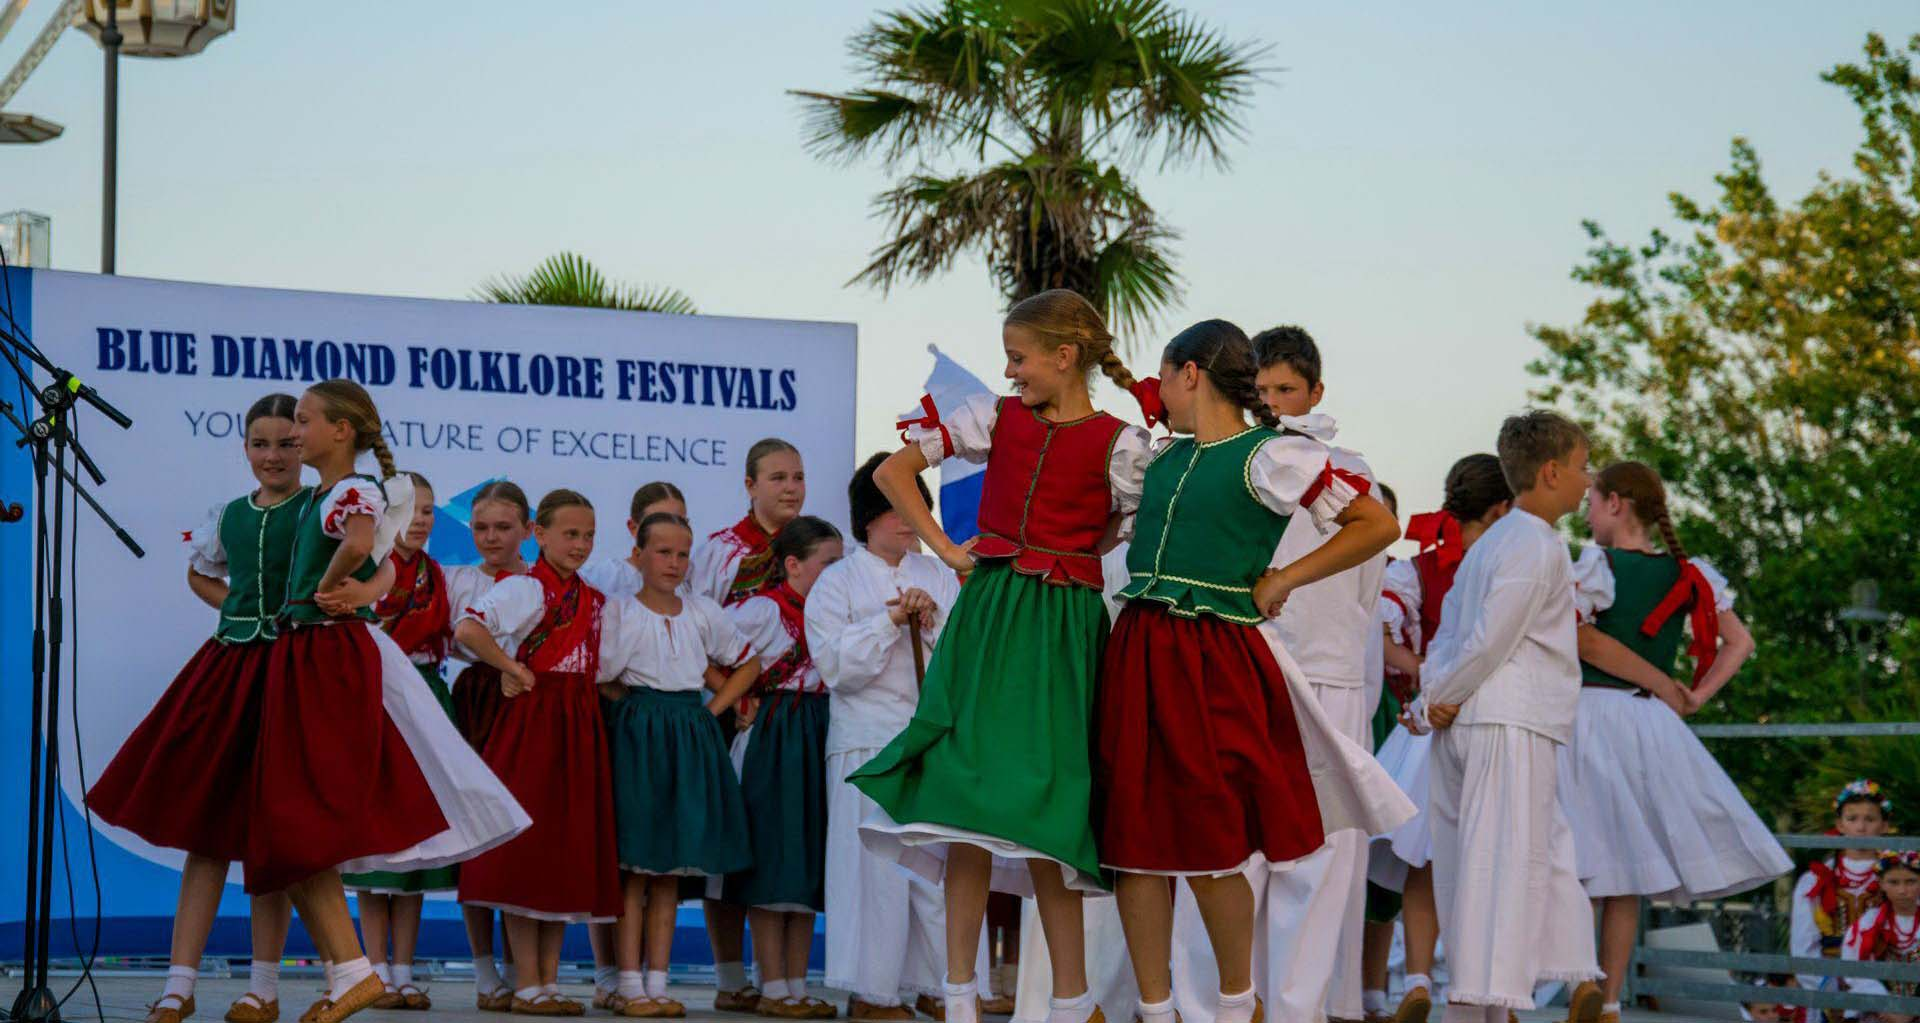 Summer folklore festival Prague, 2019